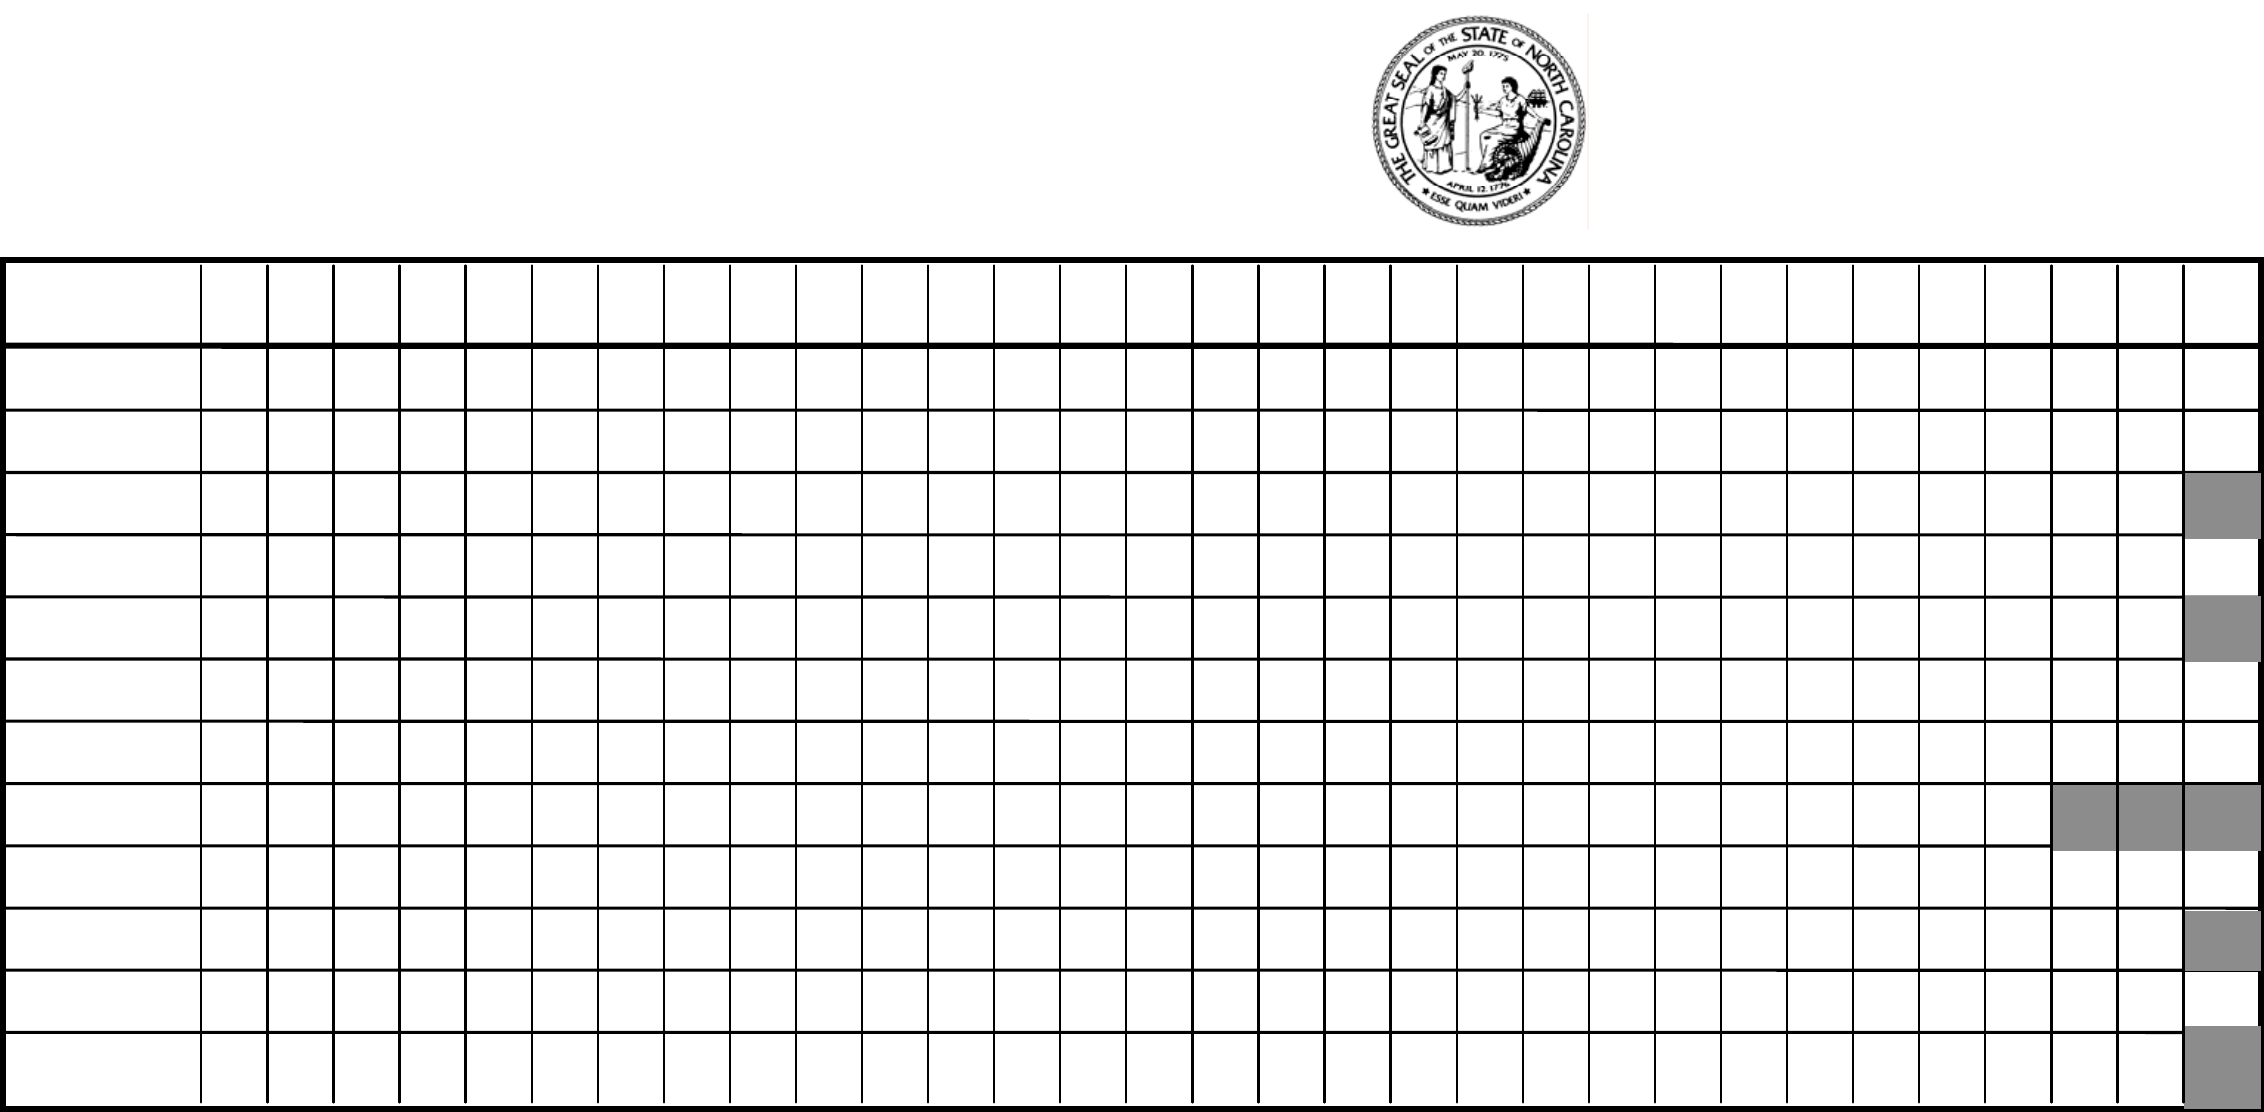 attendance record form